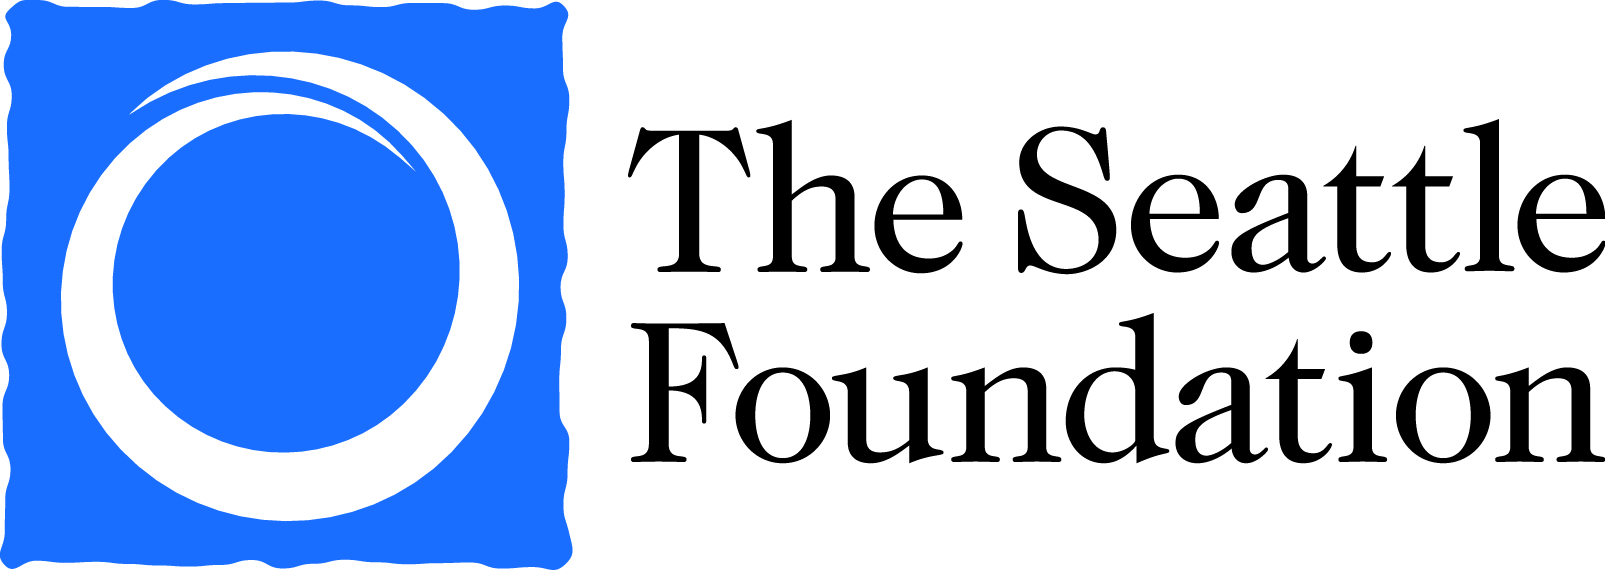 Visit The Seattle Foundation